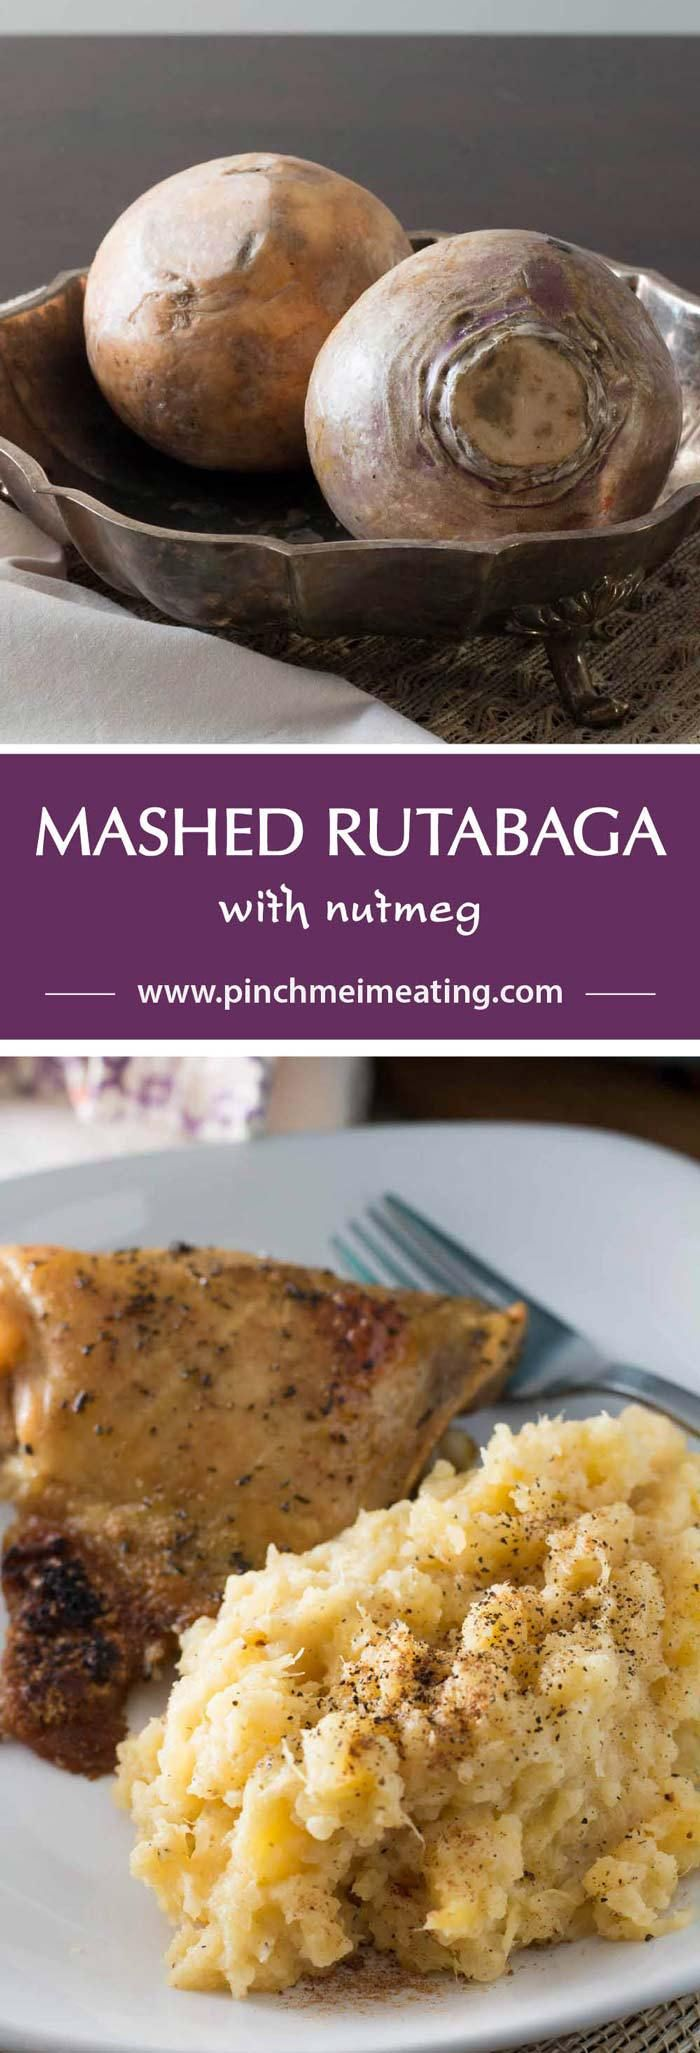 100+ Rutabaga Recipes on Pinterest | Turnip recipes, Root ...